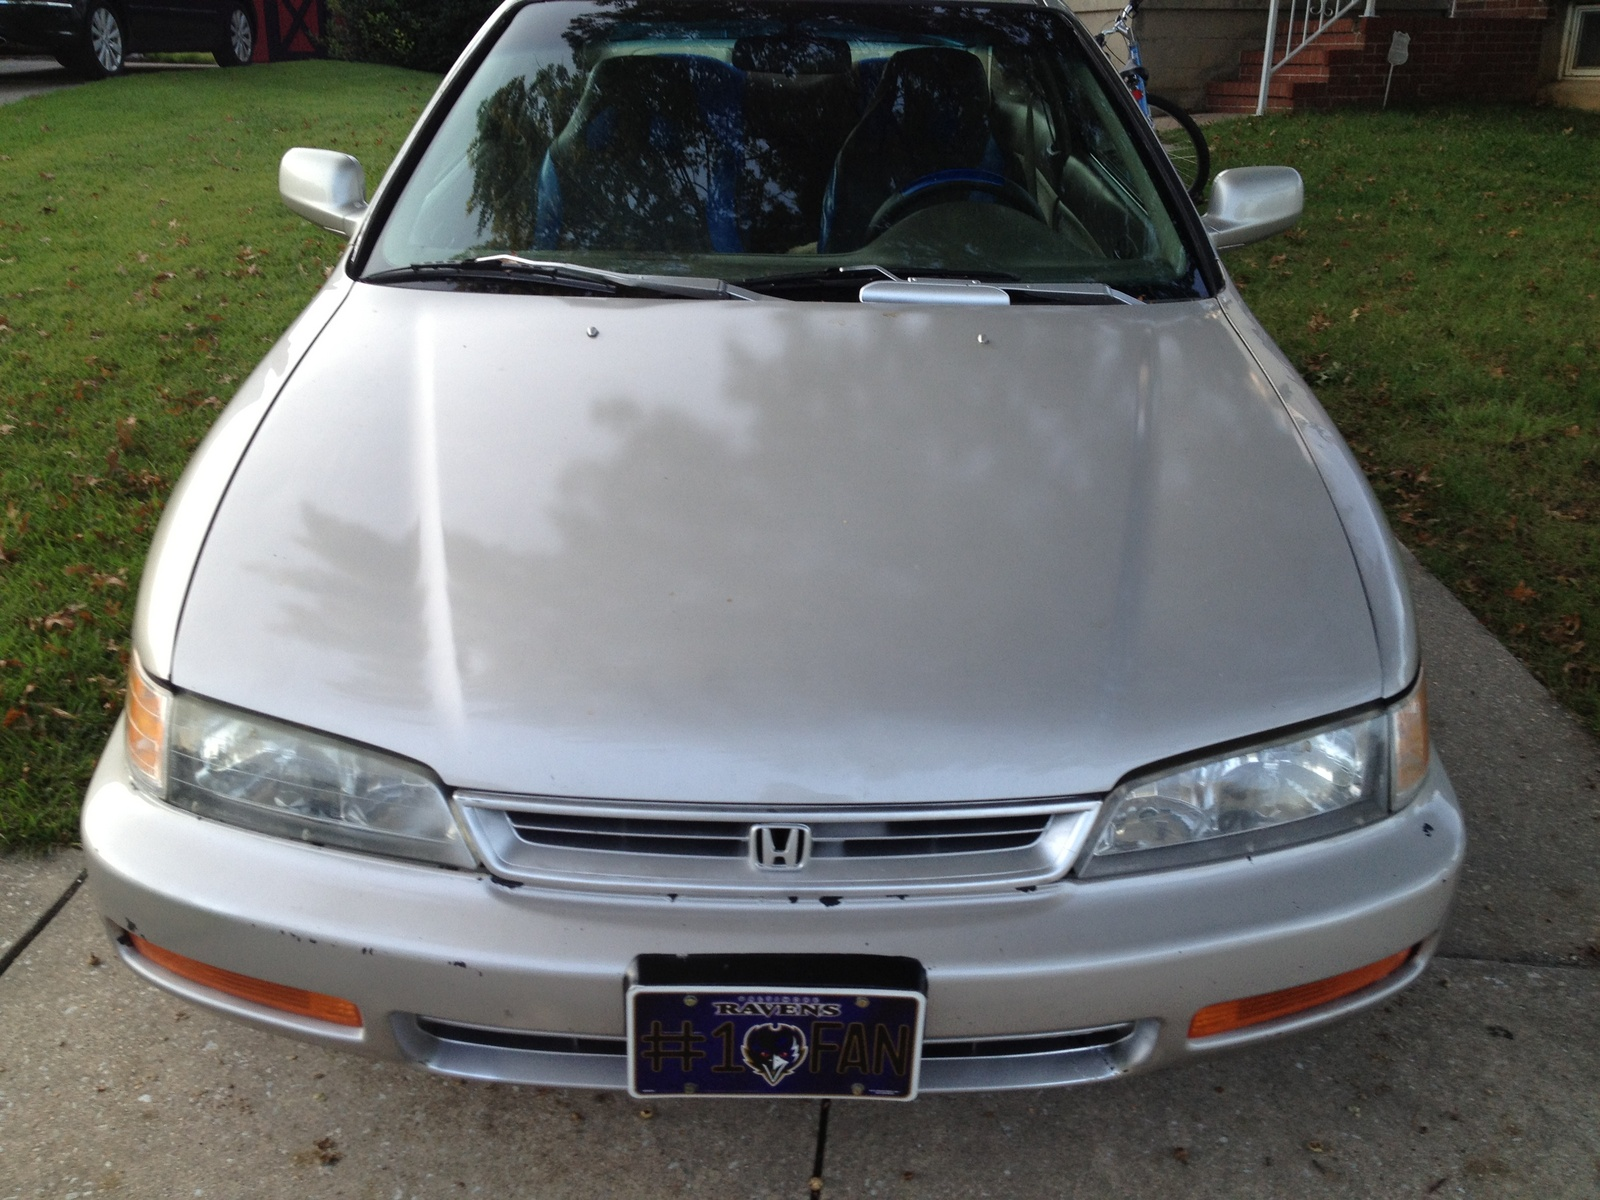 1996 Honda Accord LX Coupe picture, exterior